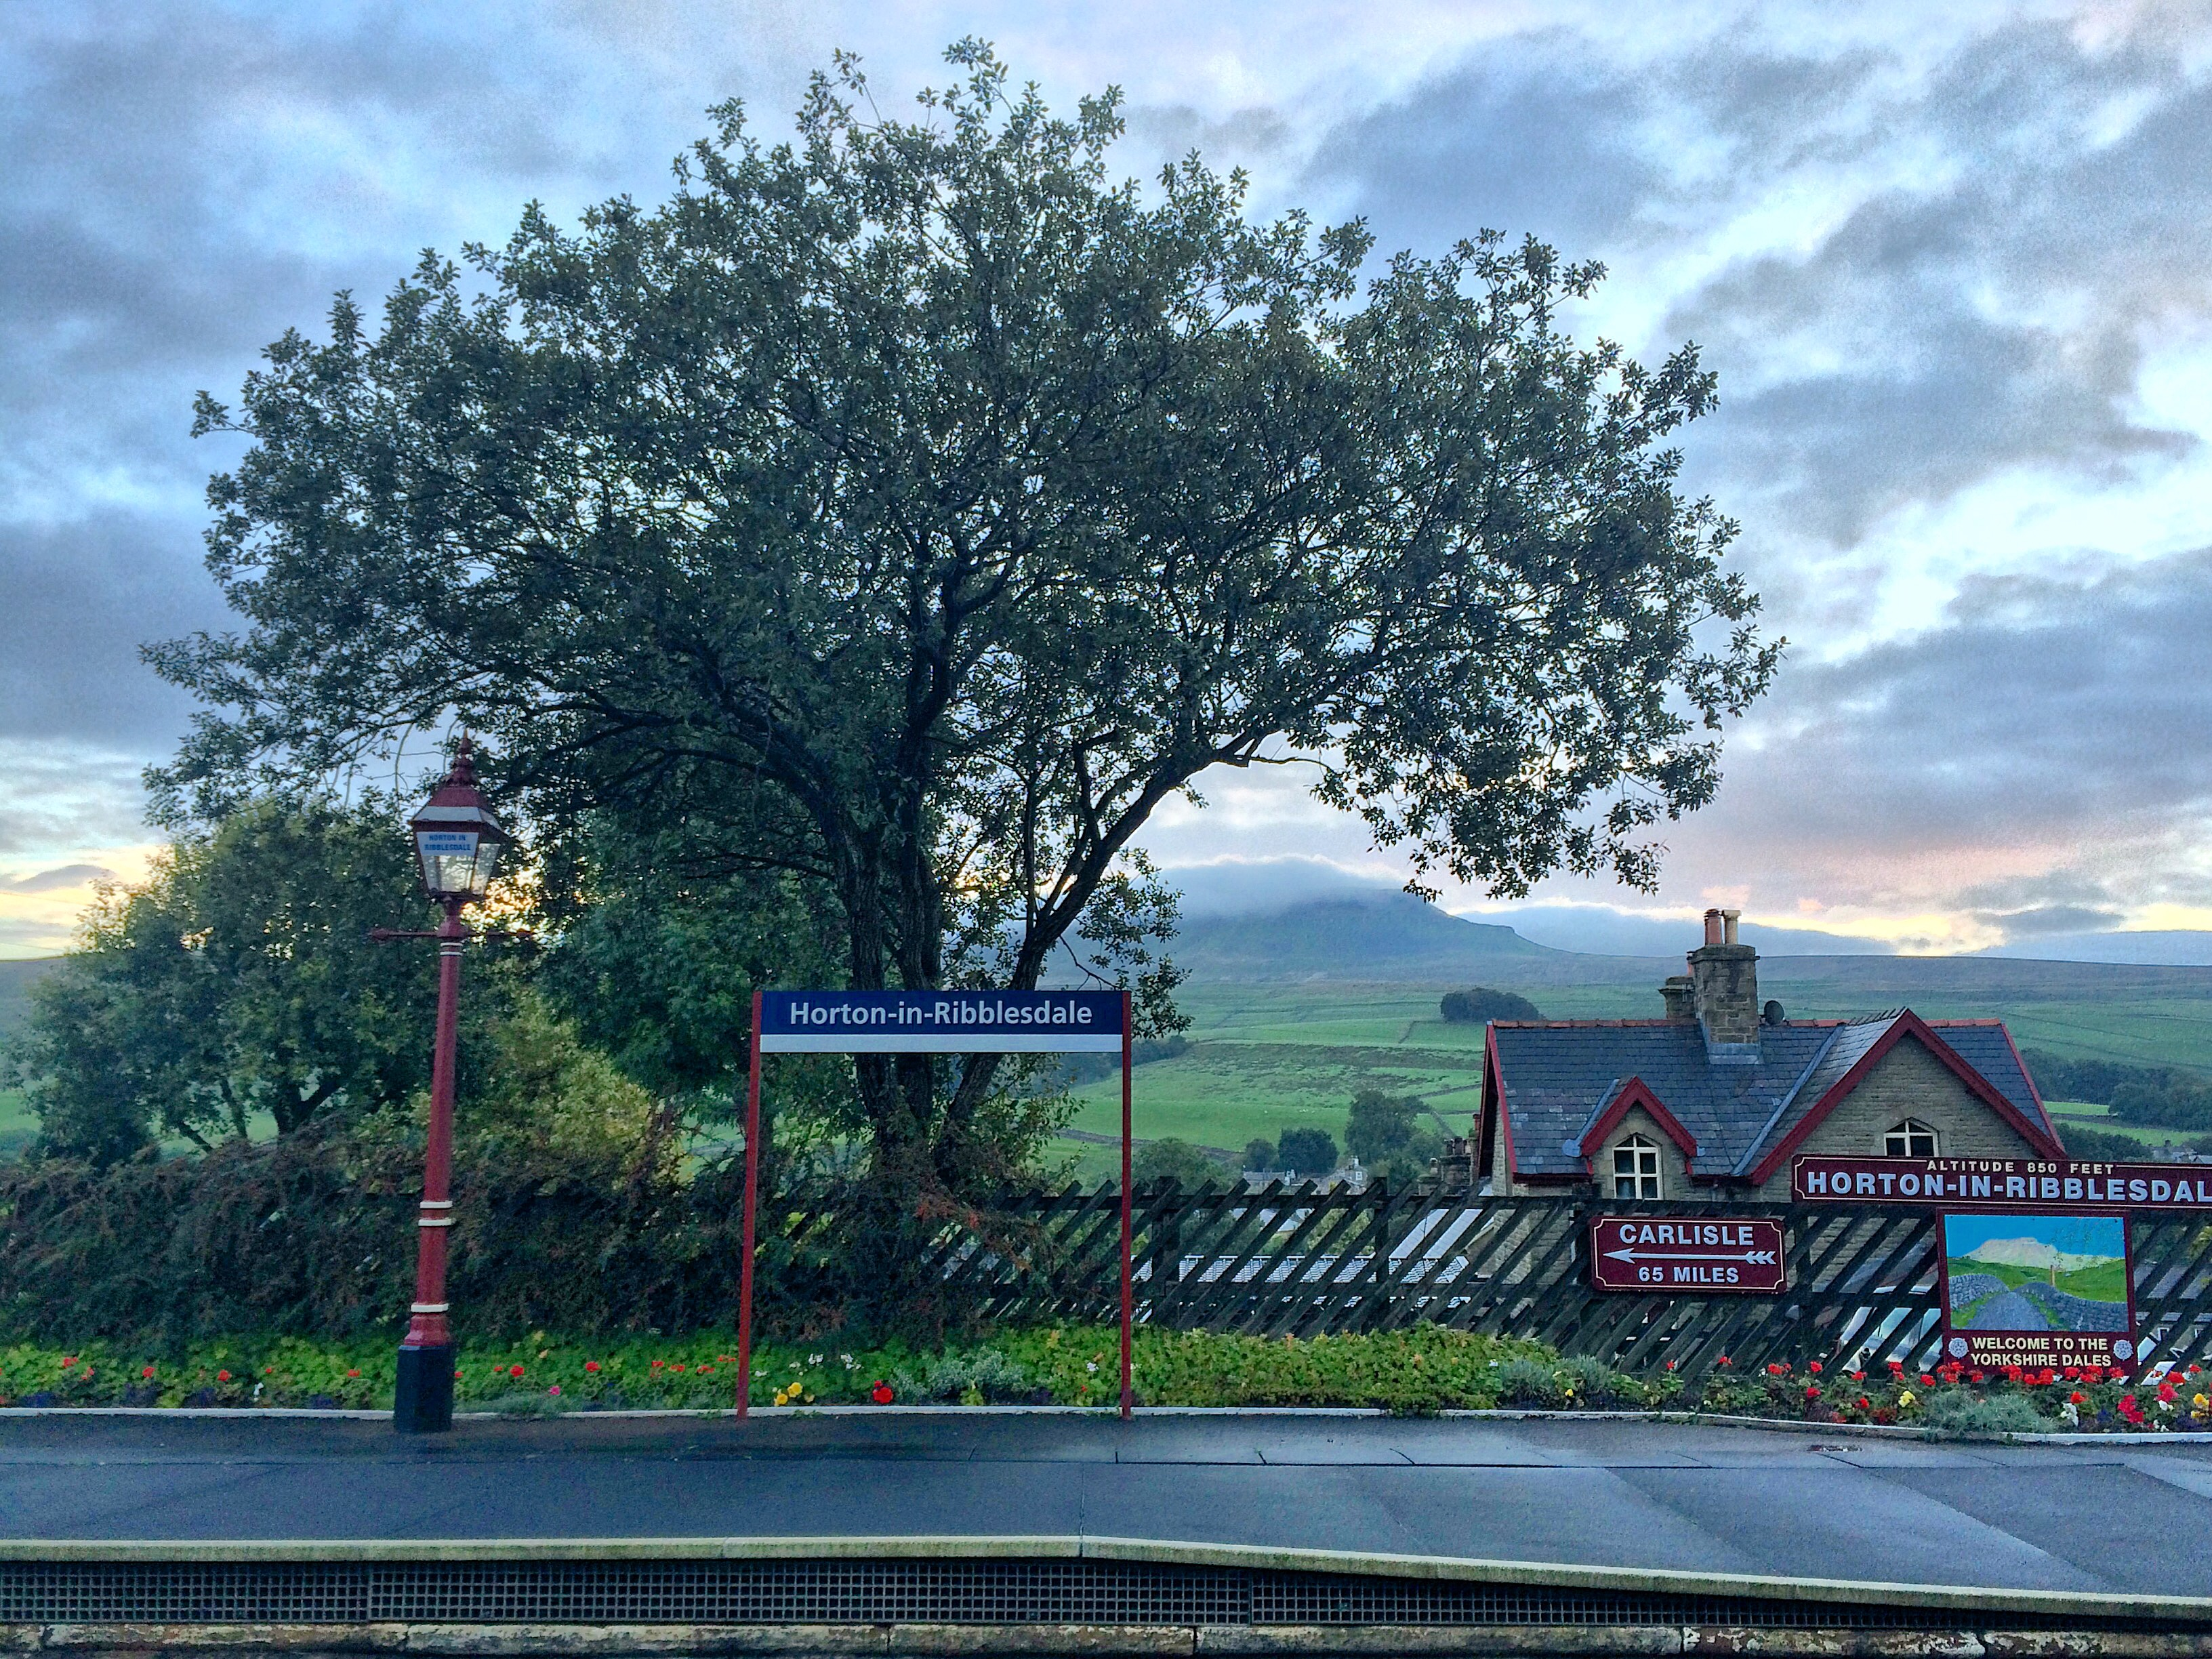 horton in ribblesdale train station with trees, fields and mountains in background